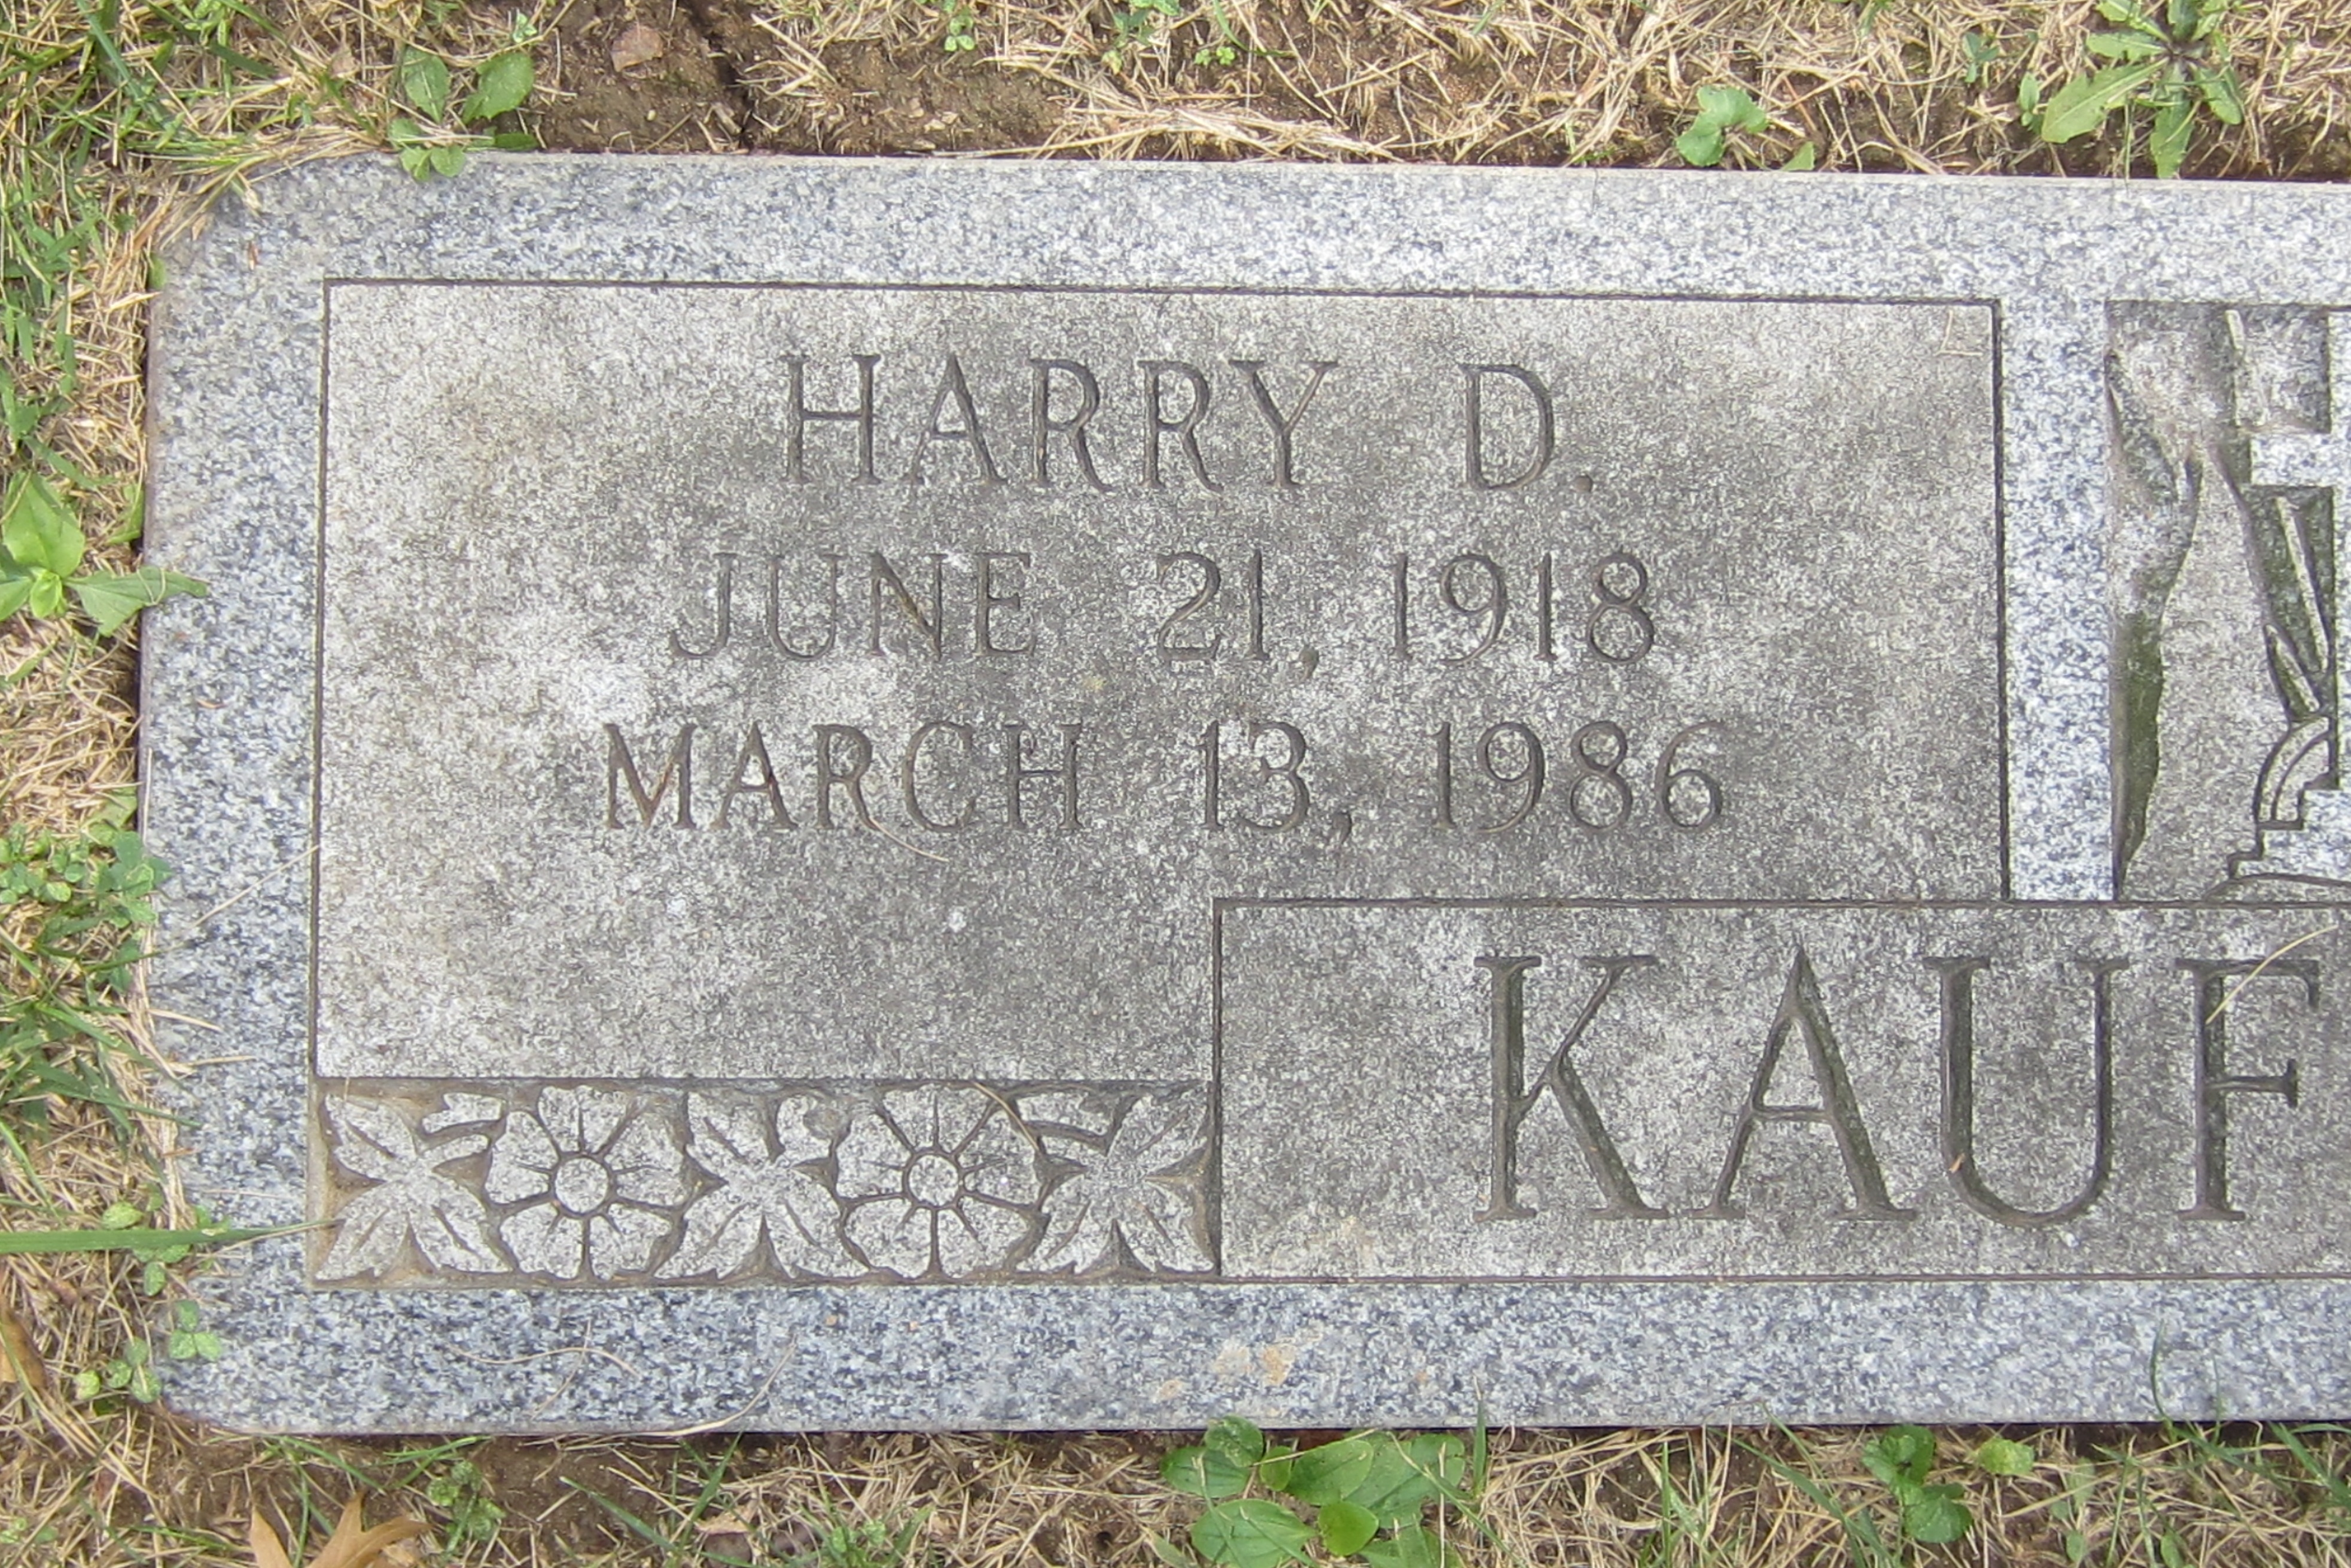 Harry Kauffman